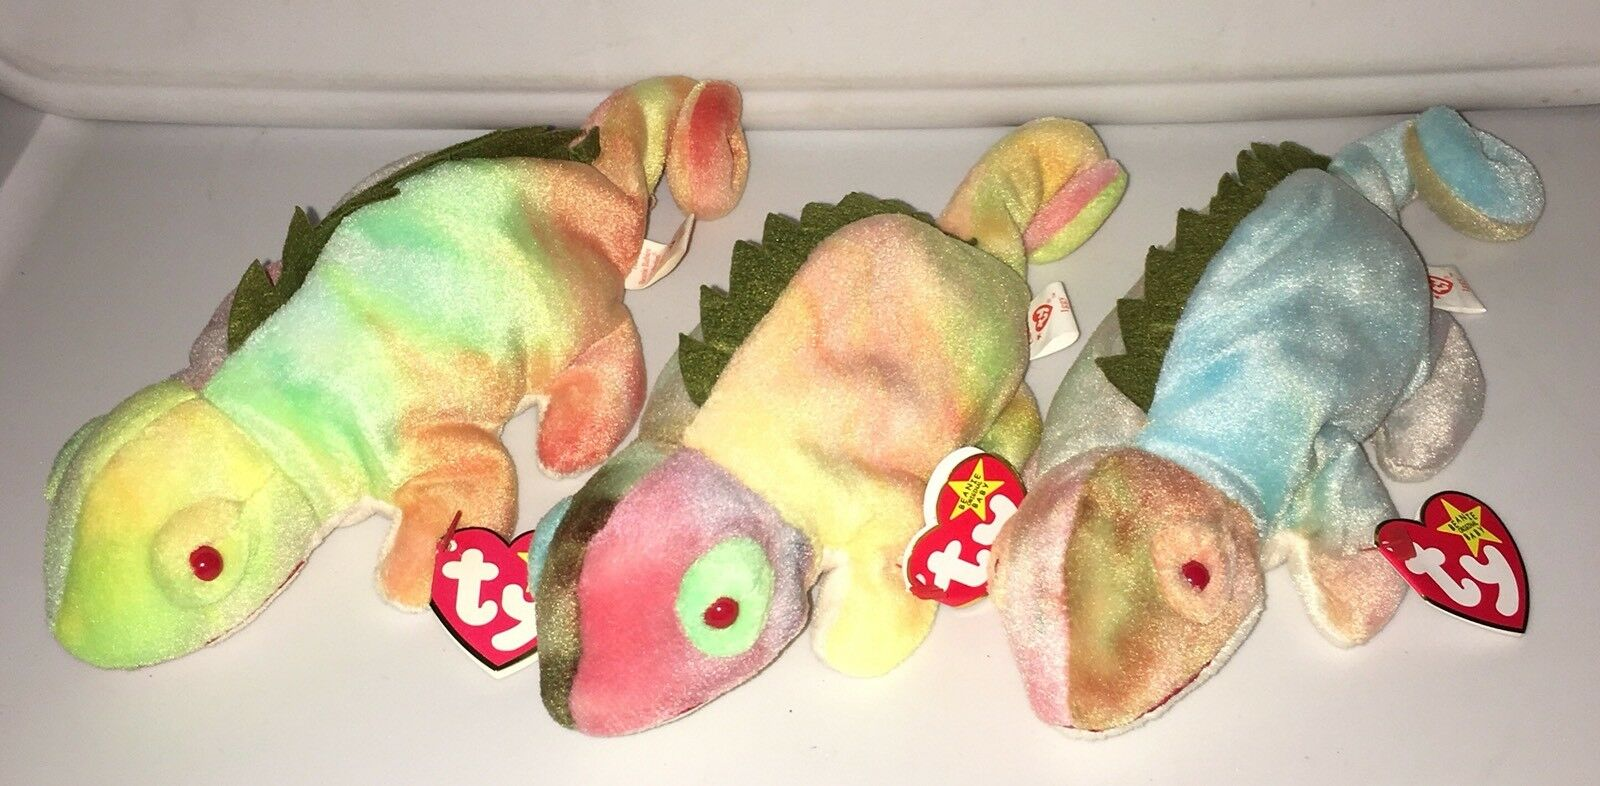 3 RARE RARE RARE AUTHENTIC TY BEANIE BABY IGGY THE IGUANA WITH TAG ERRORS 828367